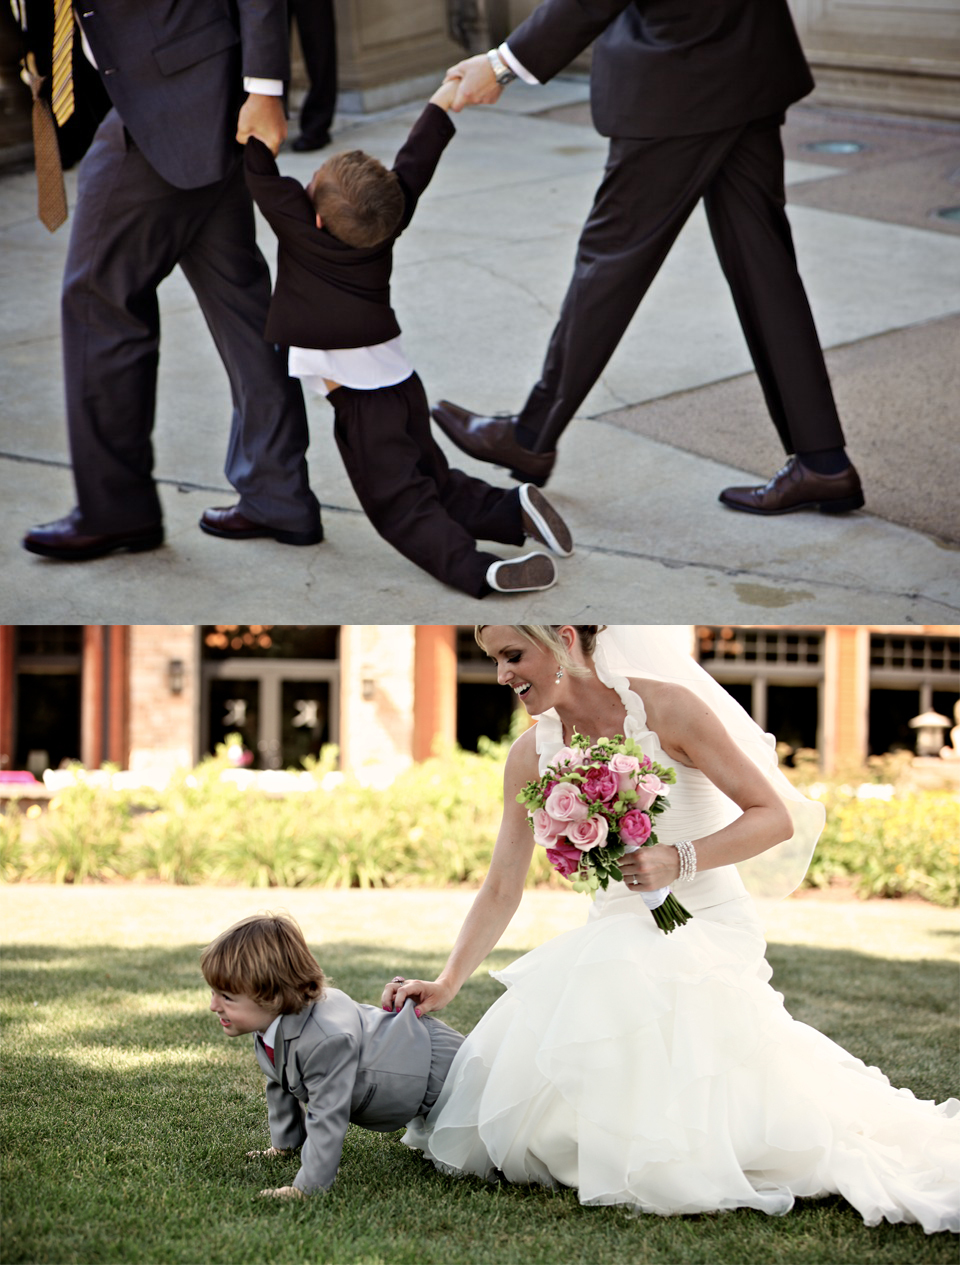 Arresting Ny Wedding Photos Escape From Wedding Planning Stress Unforgettable Ringbearers Dragged Down Ny Wedding Photos Escape From Wedding Planning Stress wedding Funny Wedding Pictures